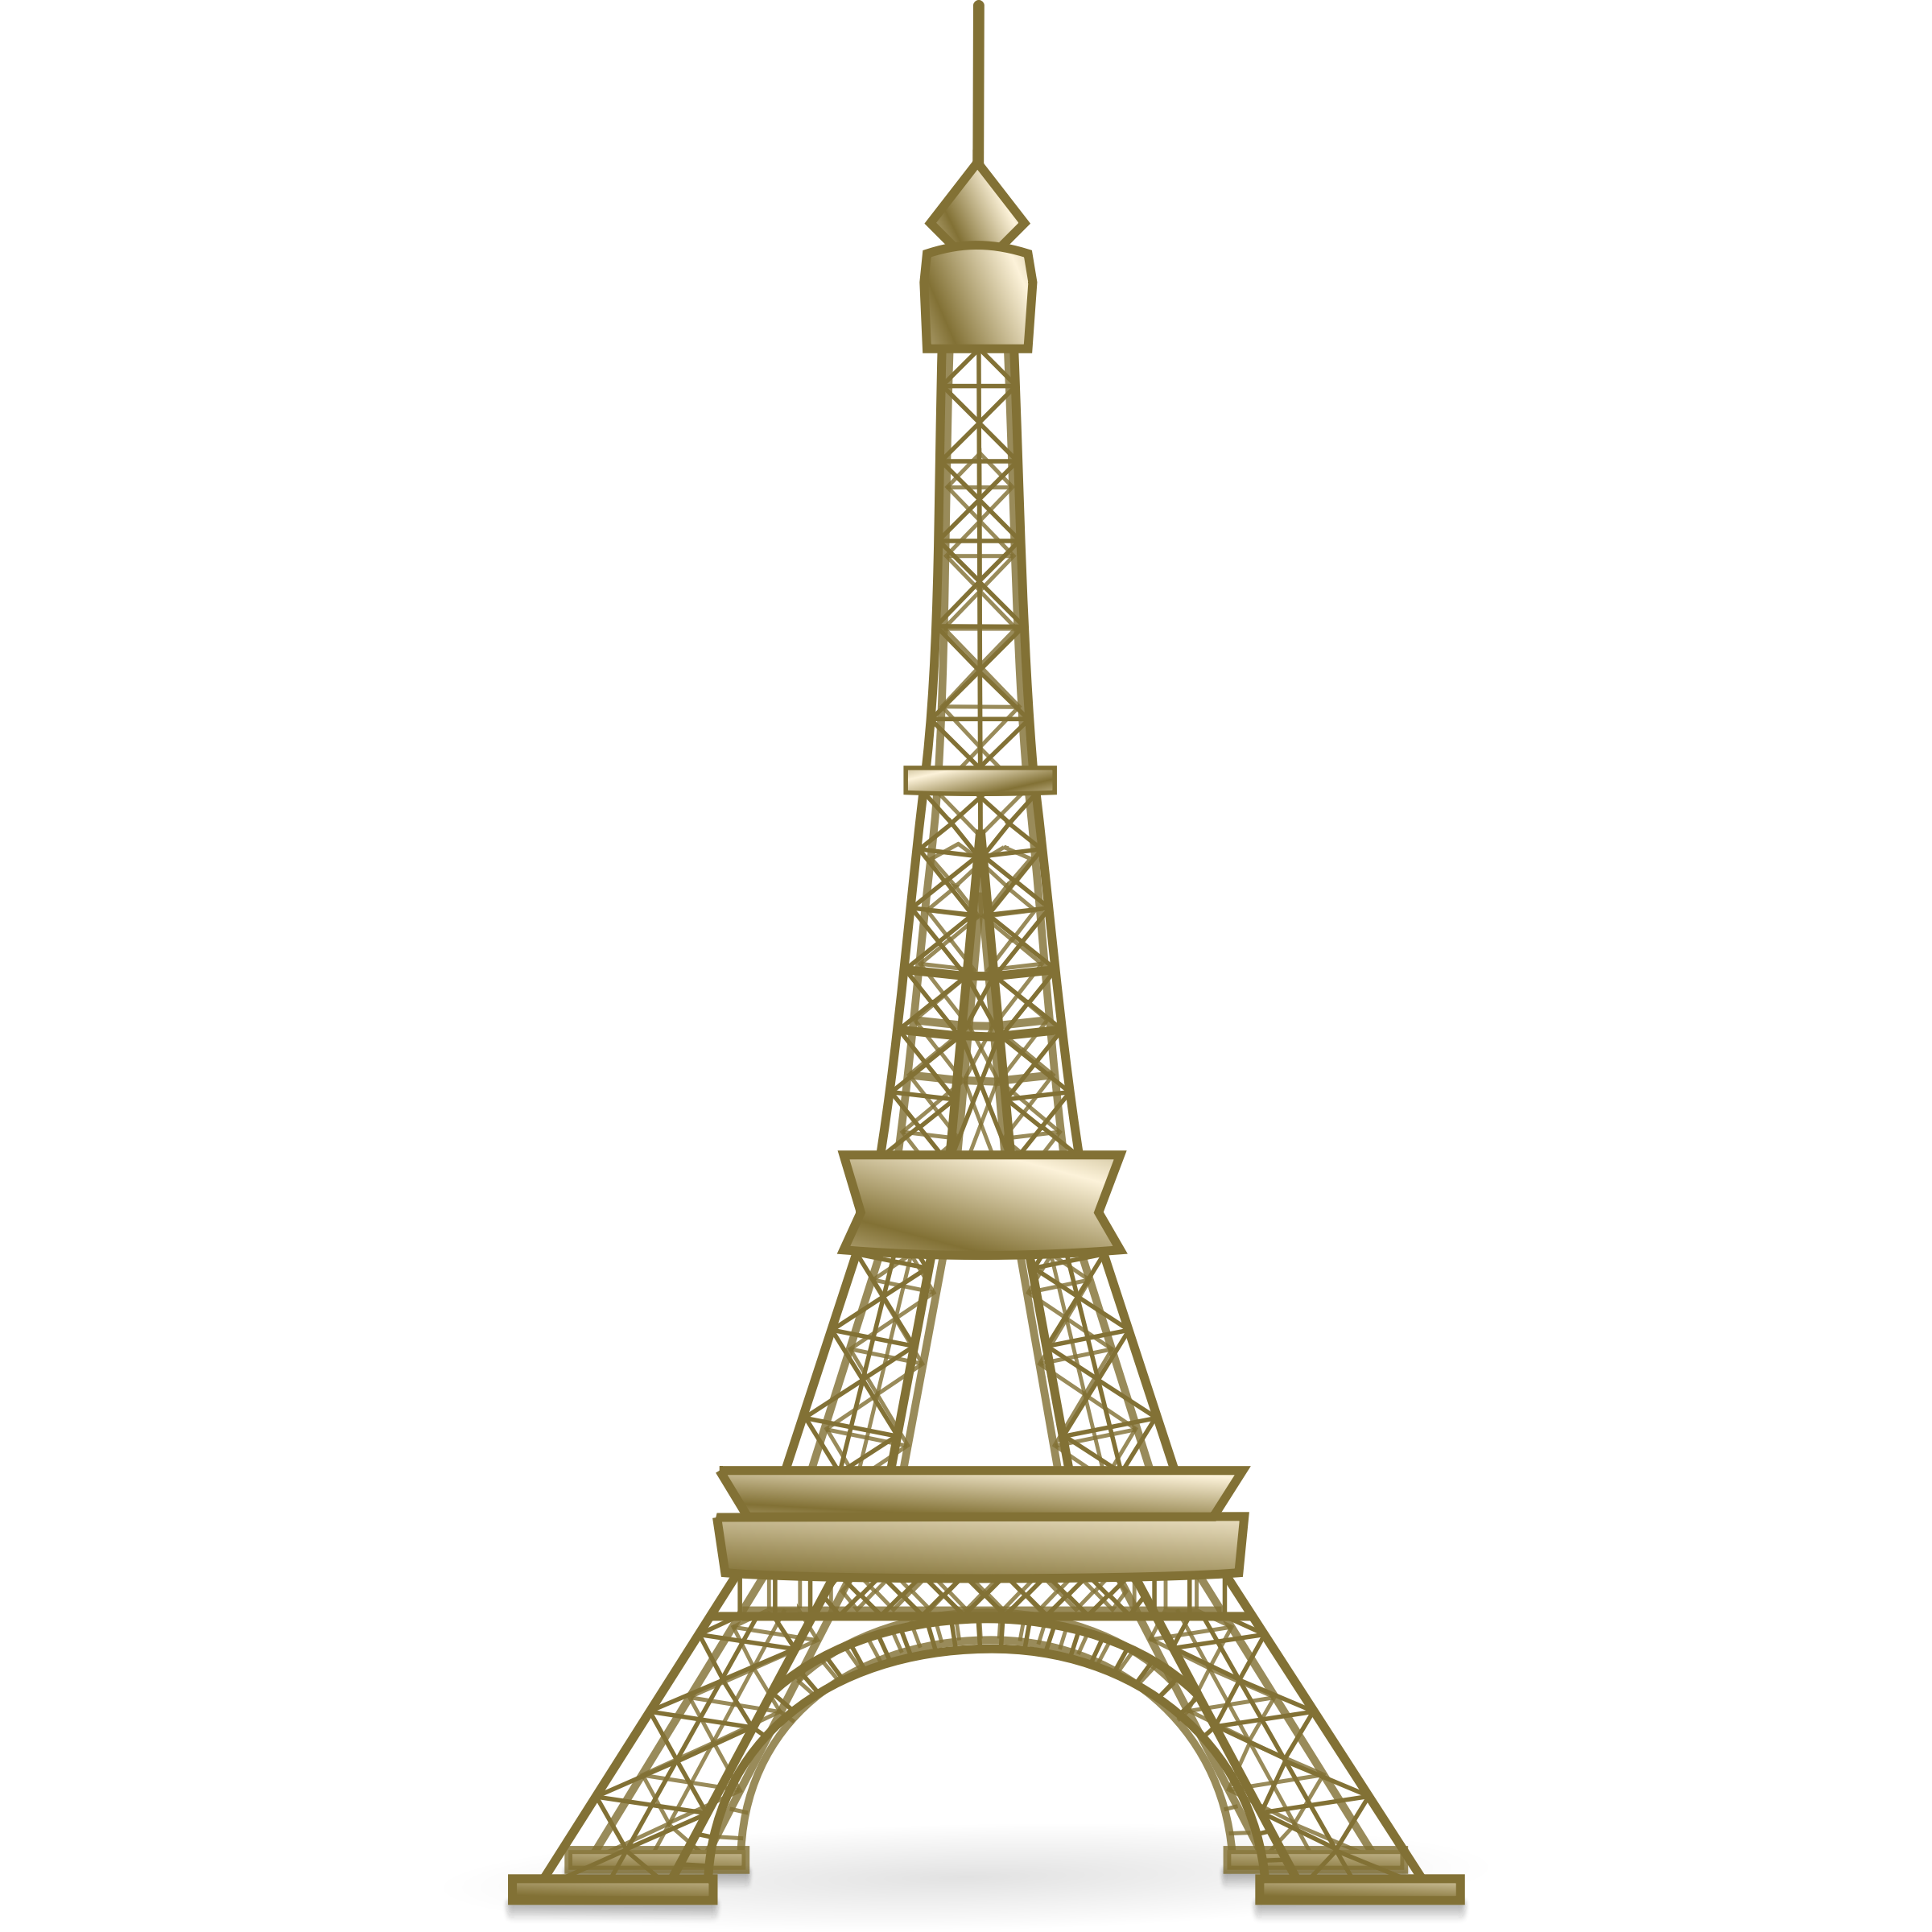 Tower clipart towers telecom. Eiffel animated free collection